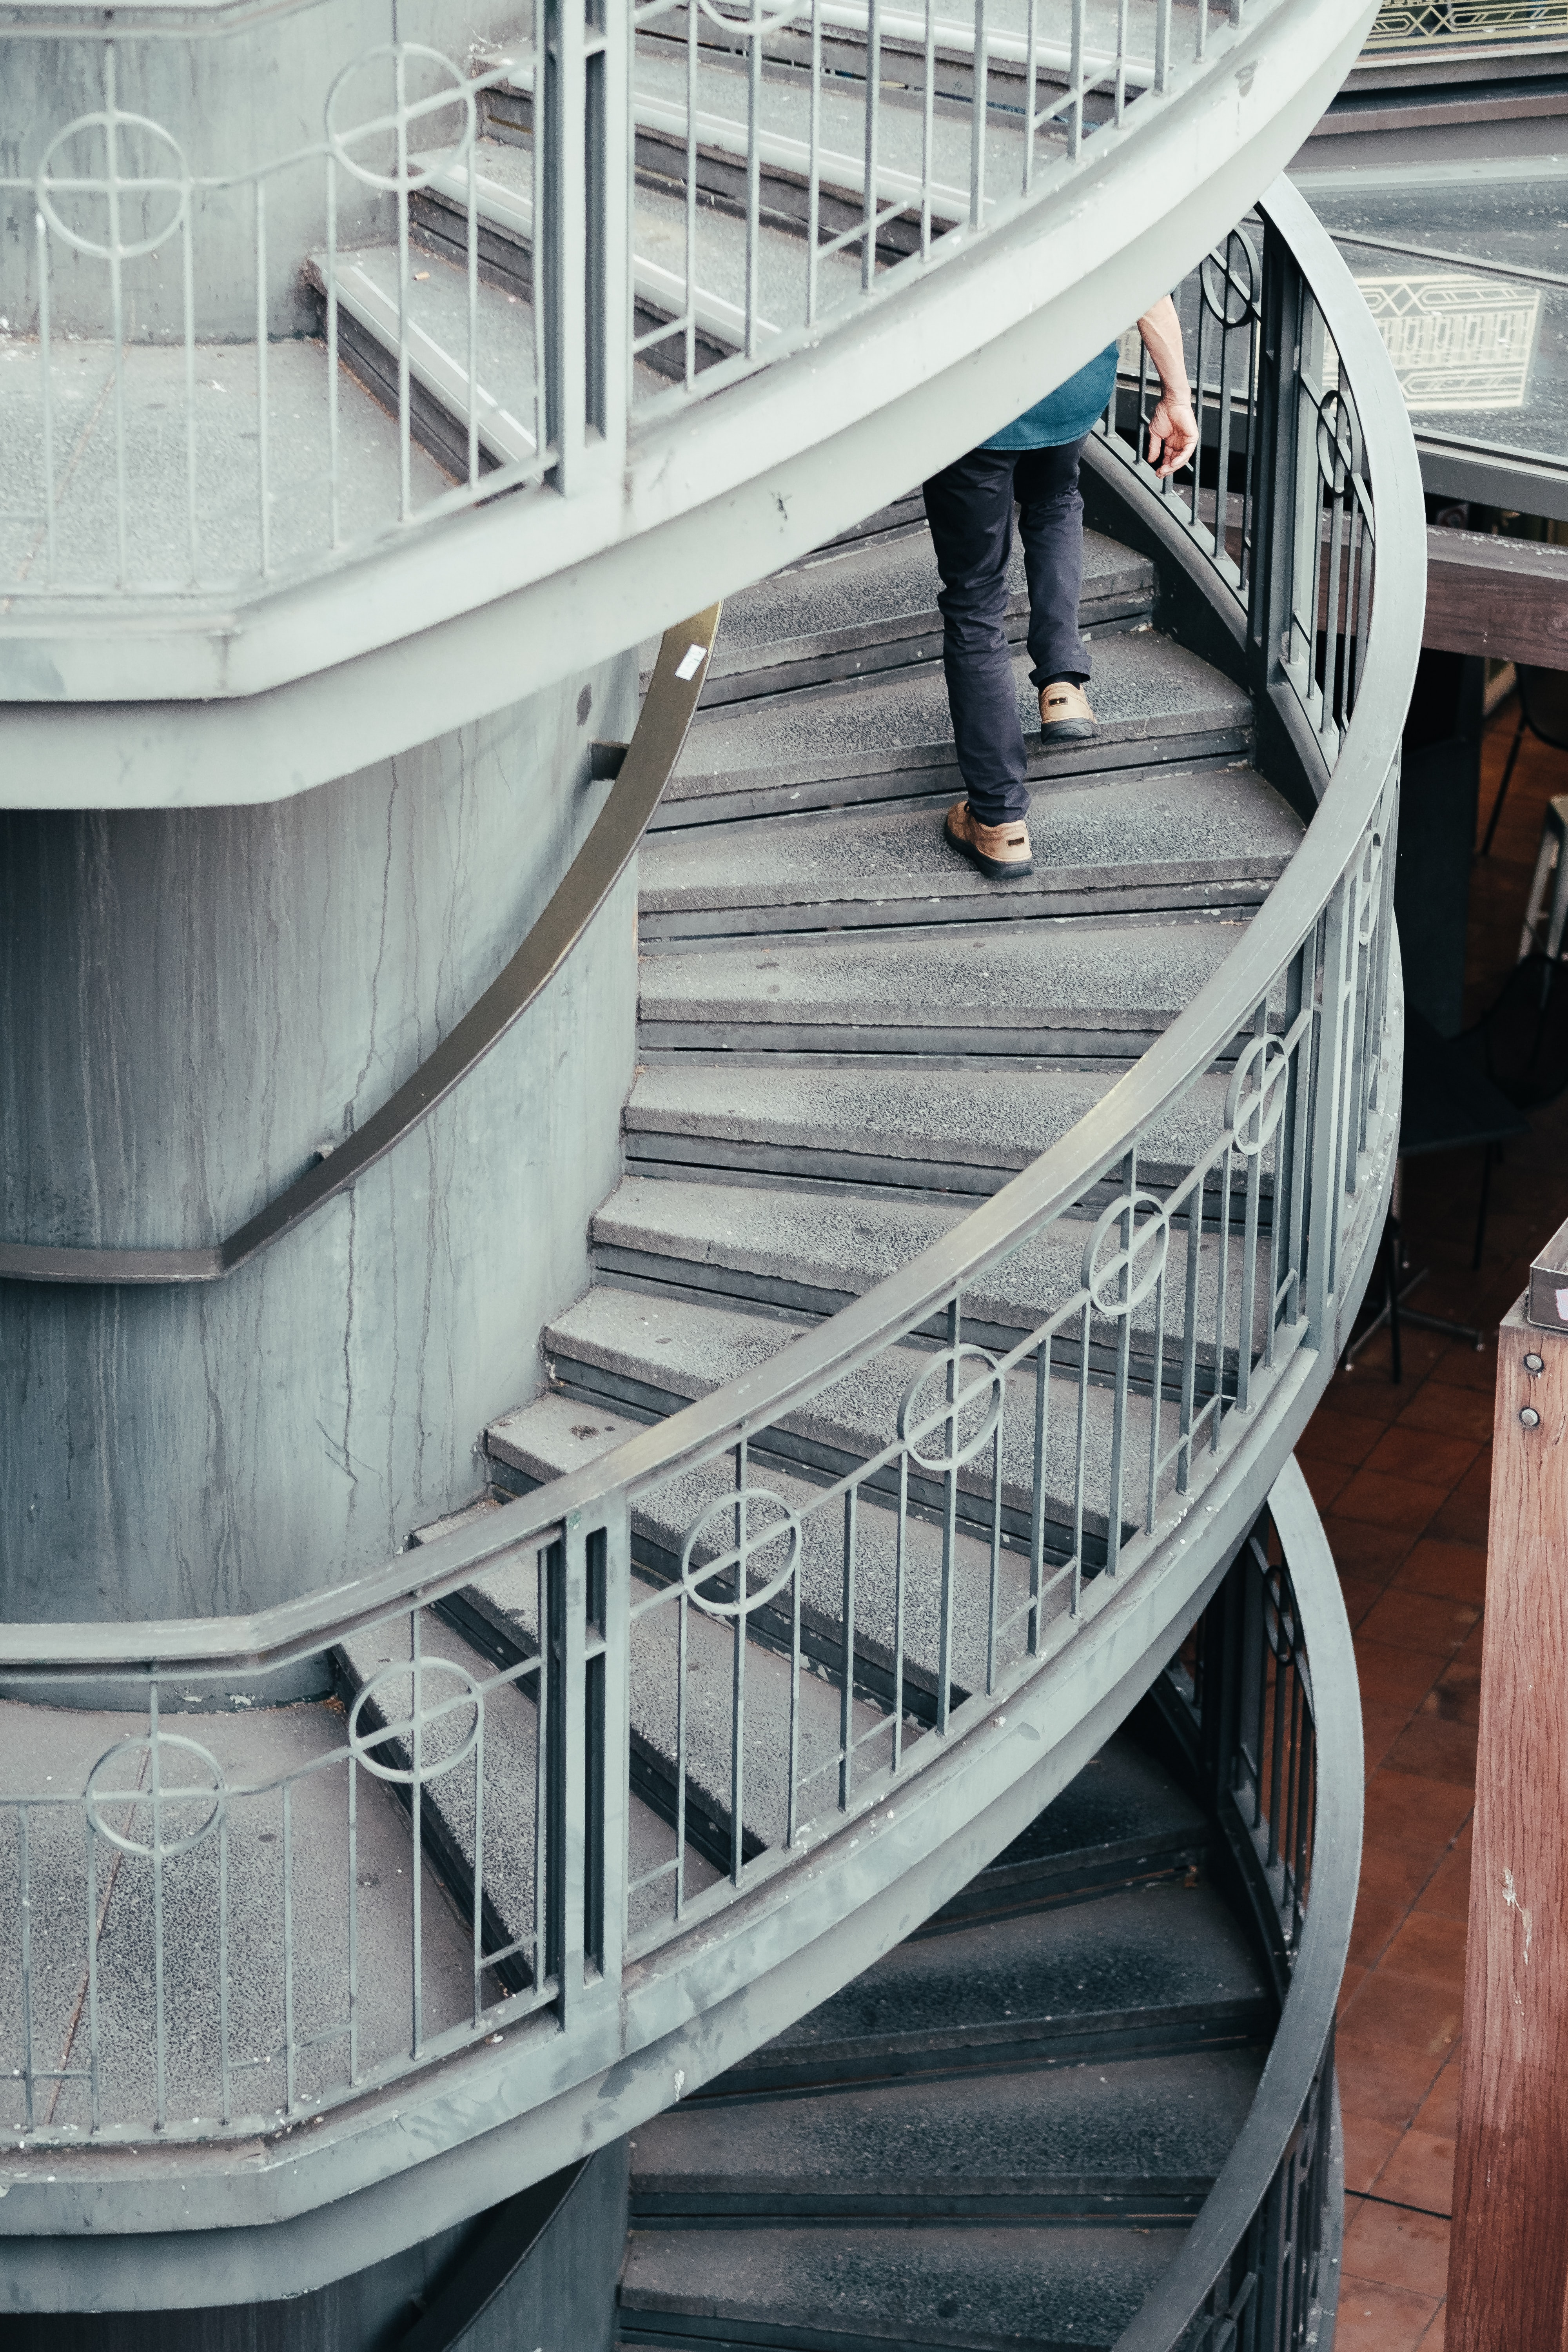 person walking on spiral staircase during daytime